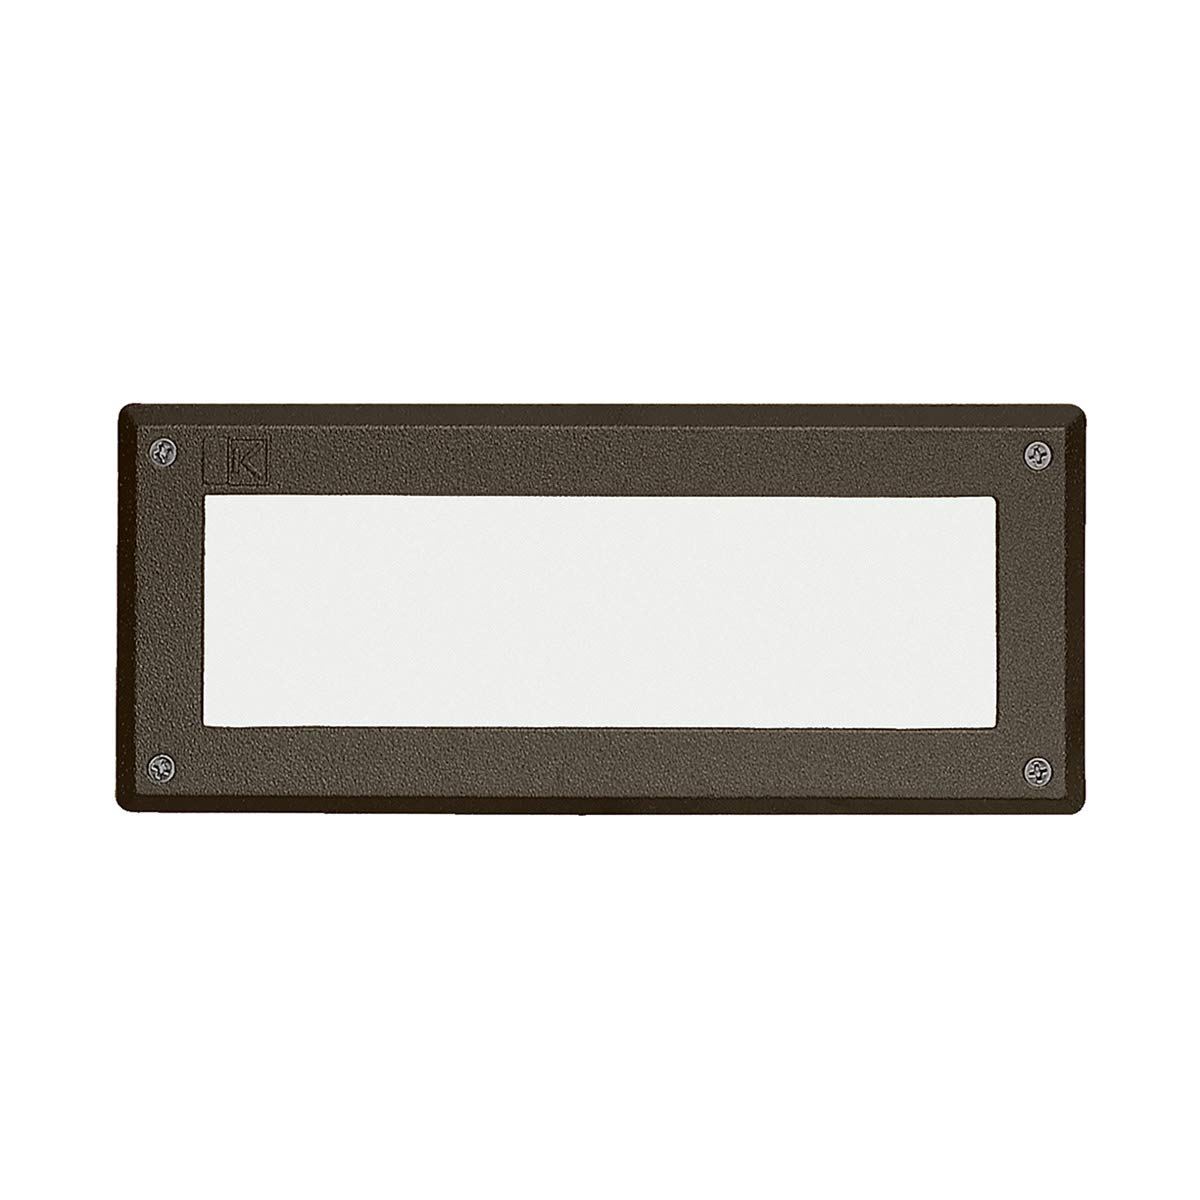 Outdoor Accessory 2 Light Fixtures with Textured Architectural Bronze Finish BIPI Bulb Type 10'' 20 Watts